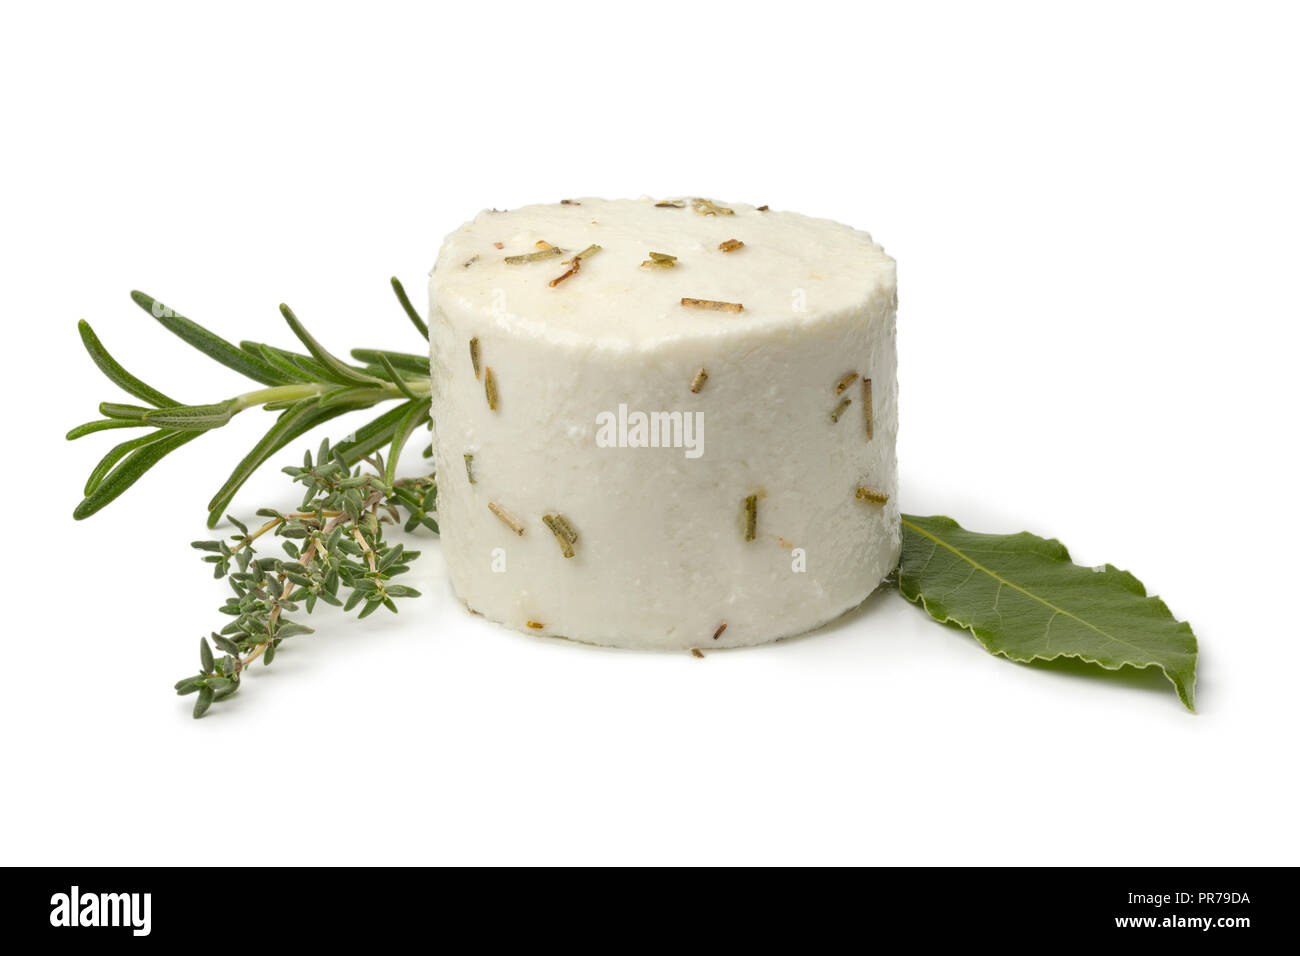 Single preserved white organic Dutch goat cheese and herbs isolated on white background - Stock Image